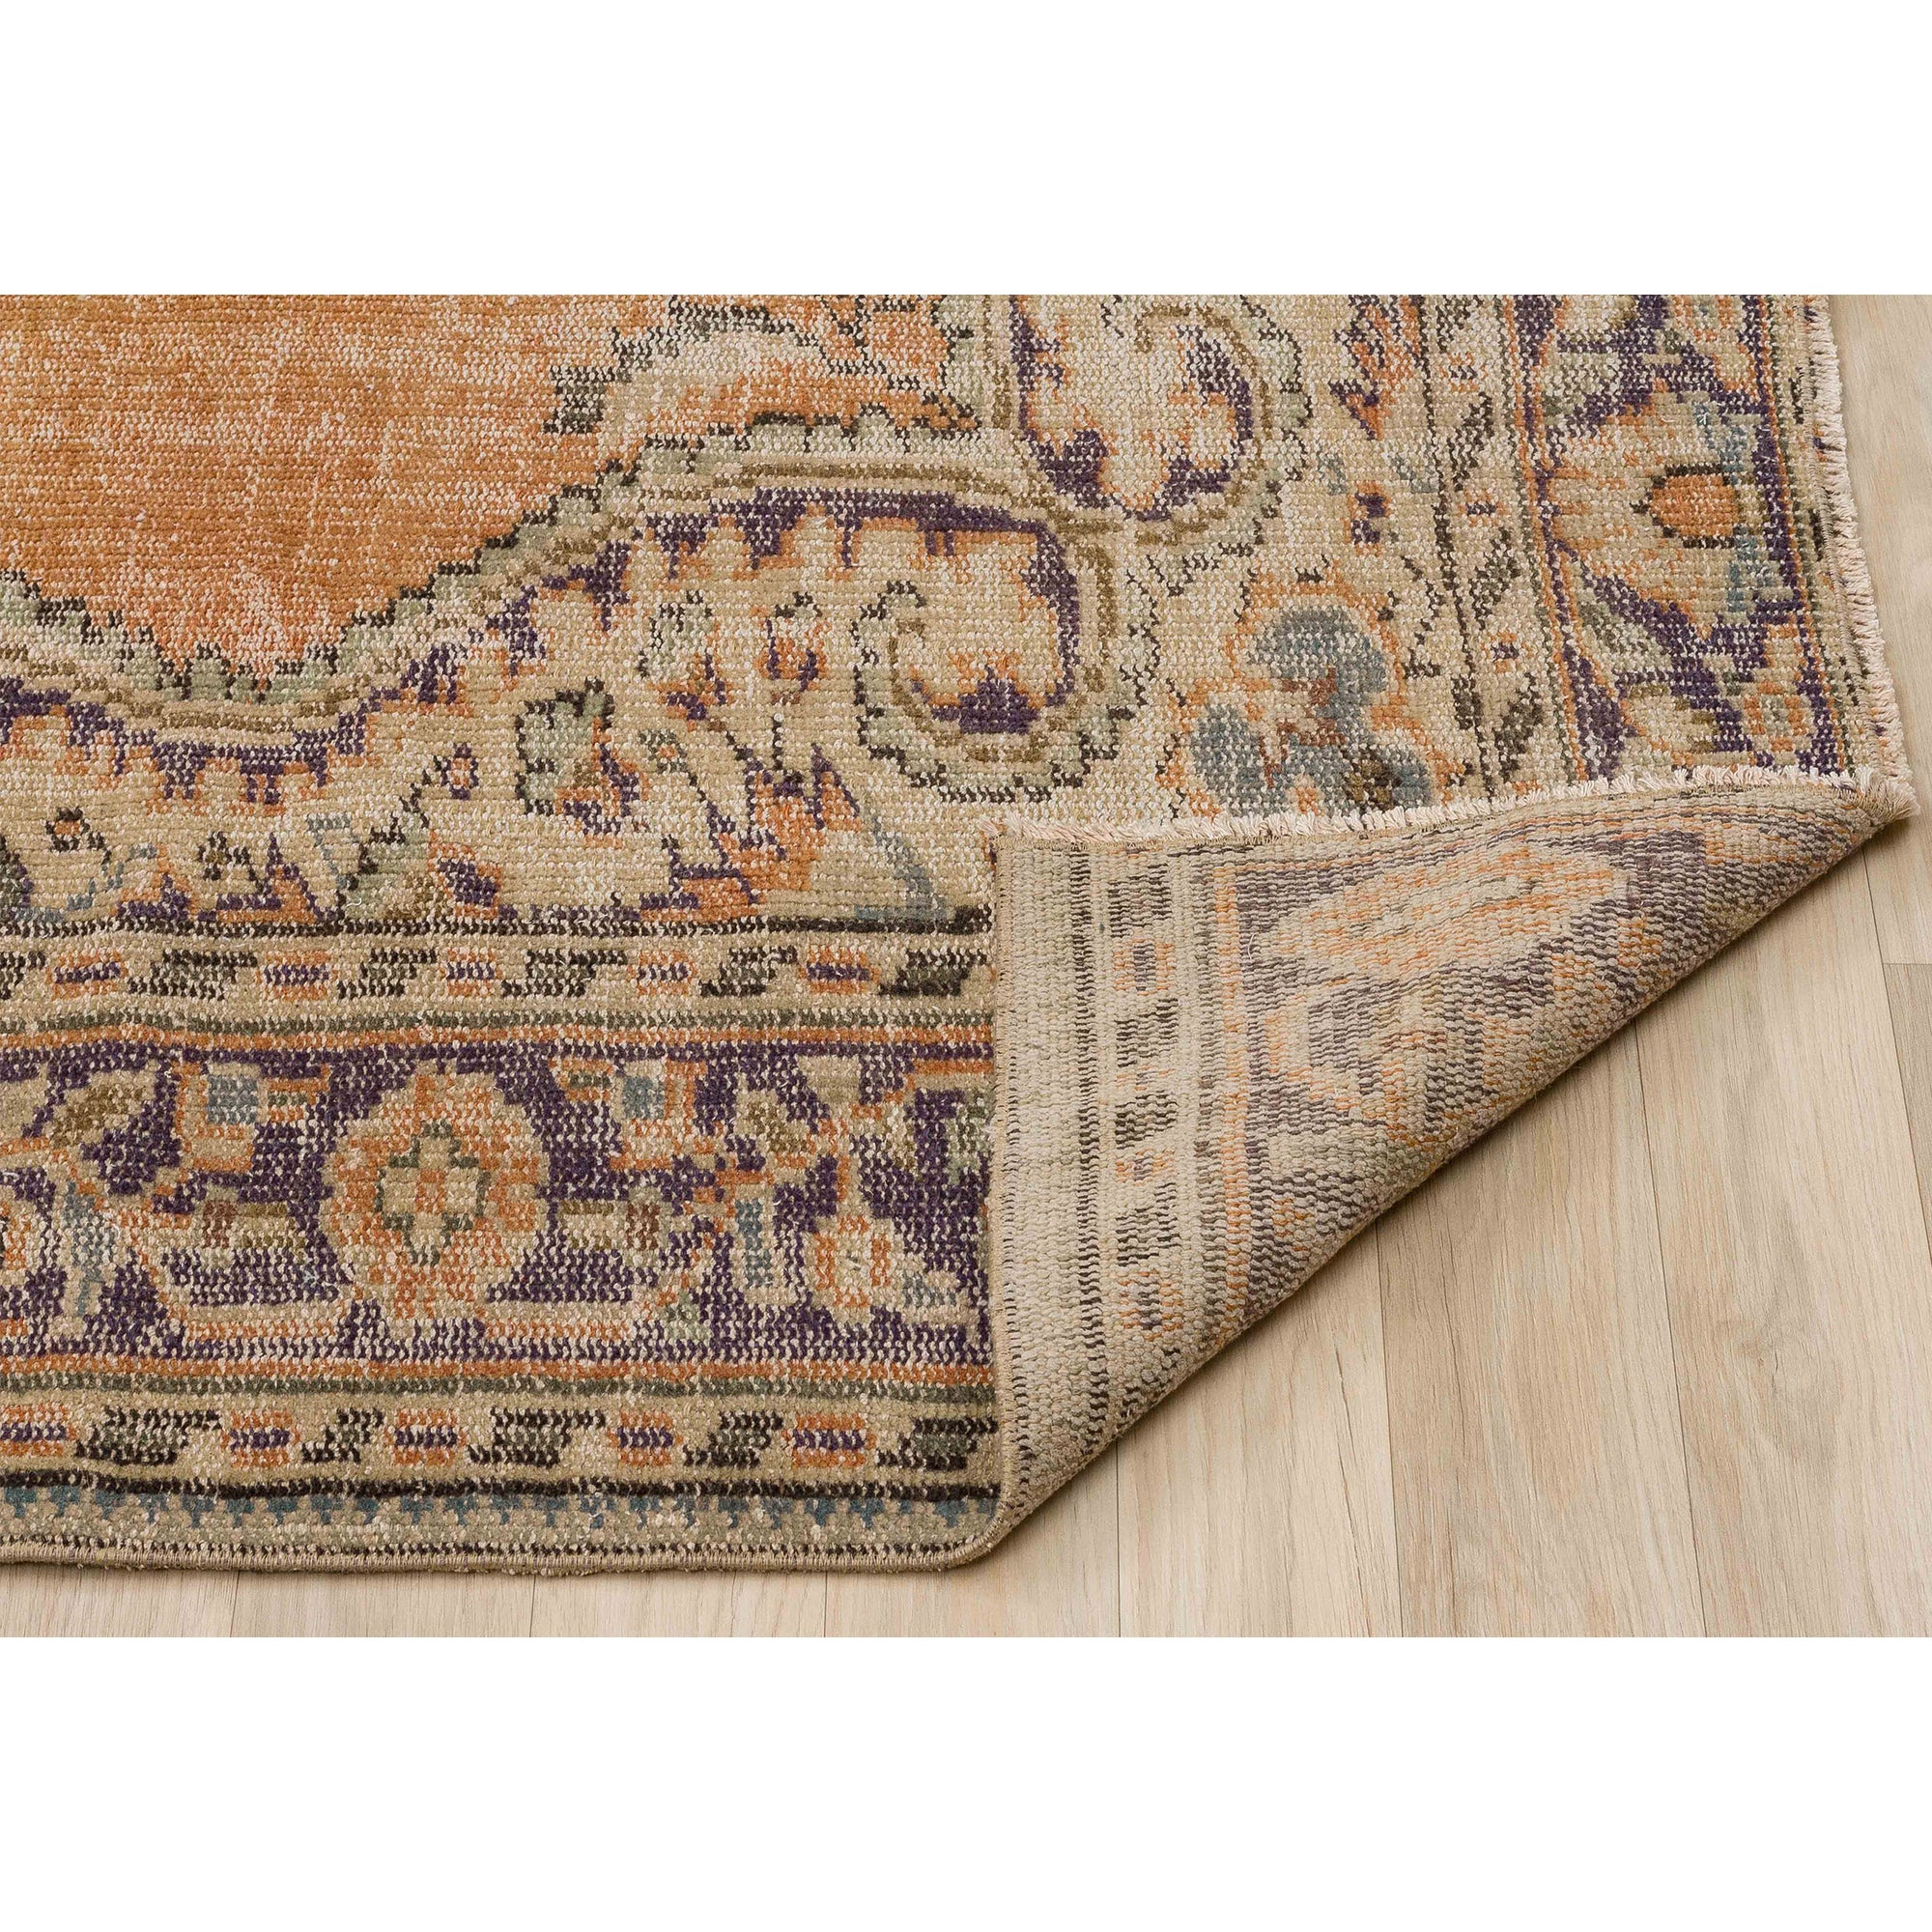 190 X 280 Anatolian Hand Knotted Carpet Vintage Style 60N2744 -  190 × 280 سجادة أناضولية معقودة يدويًا - Shop Online Furniture and Home Decor Store in Dubai, UAE at ebarza